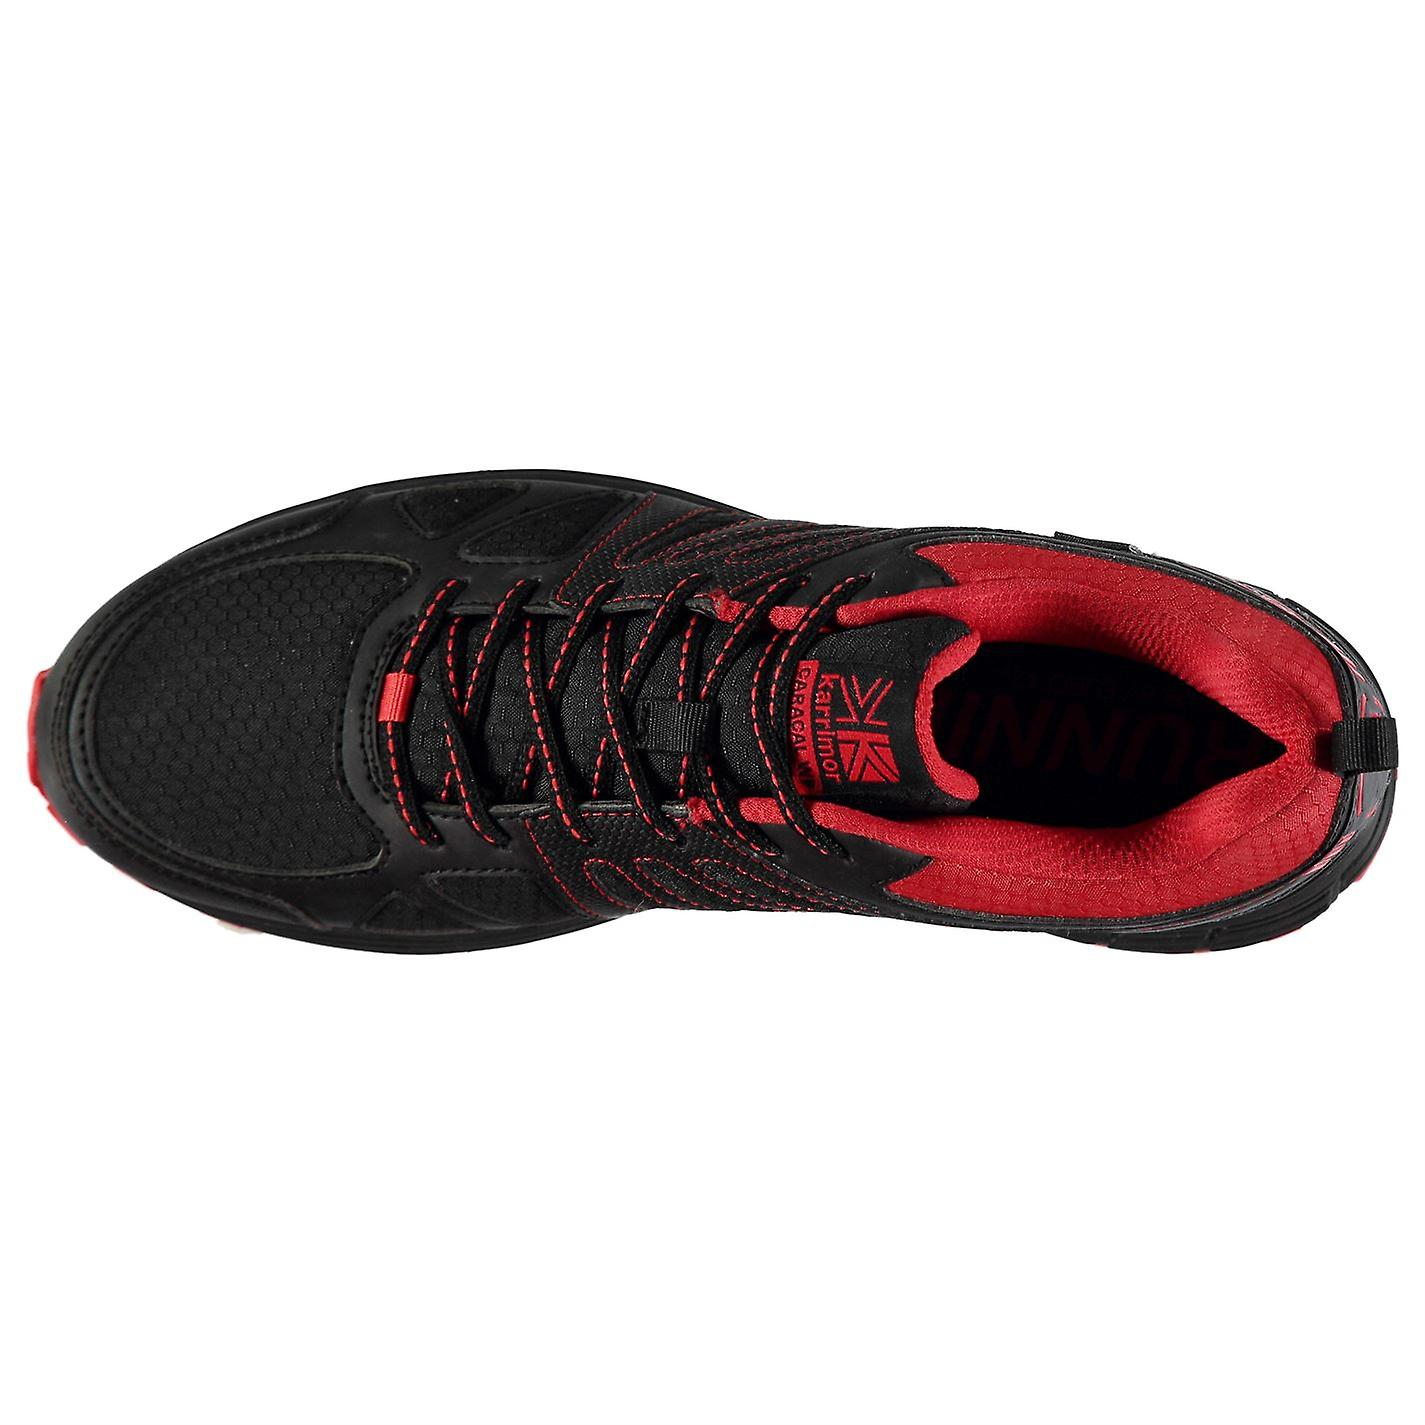 low priced d77df 10efa Karrimor Mens Caracal Waterproof Trail Running Shoes Runners Lace Up  Breathable